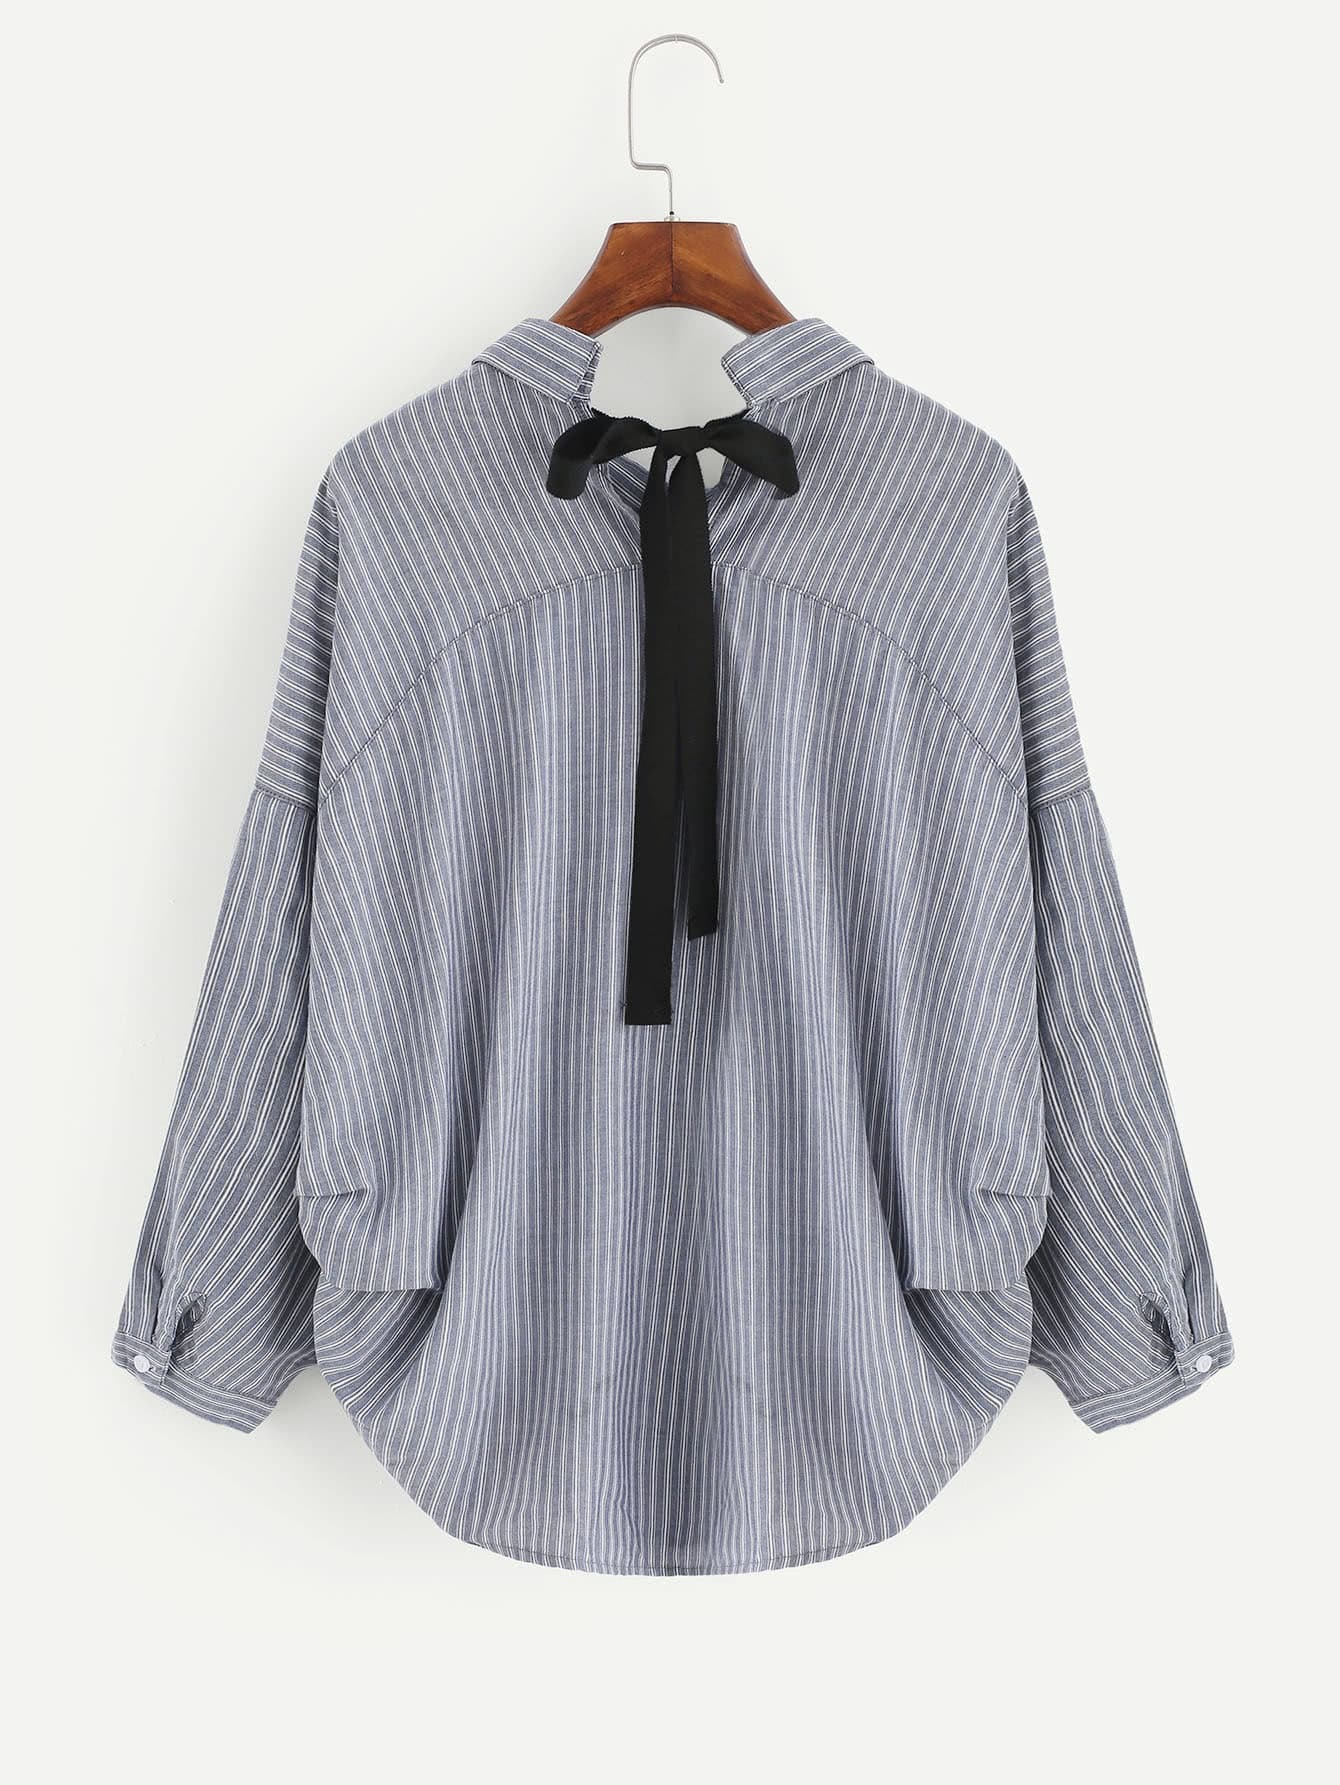 Contrast Bow Tie Dolphin Hem Striped Blouse contrast embroidered mesh yoke bow tie striped blouse